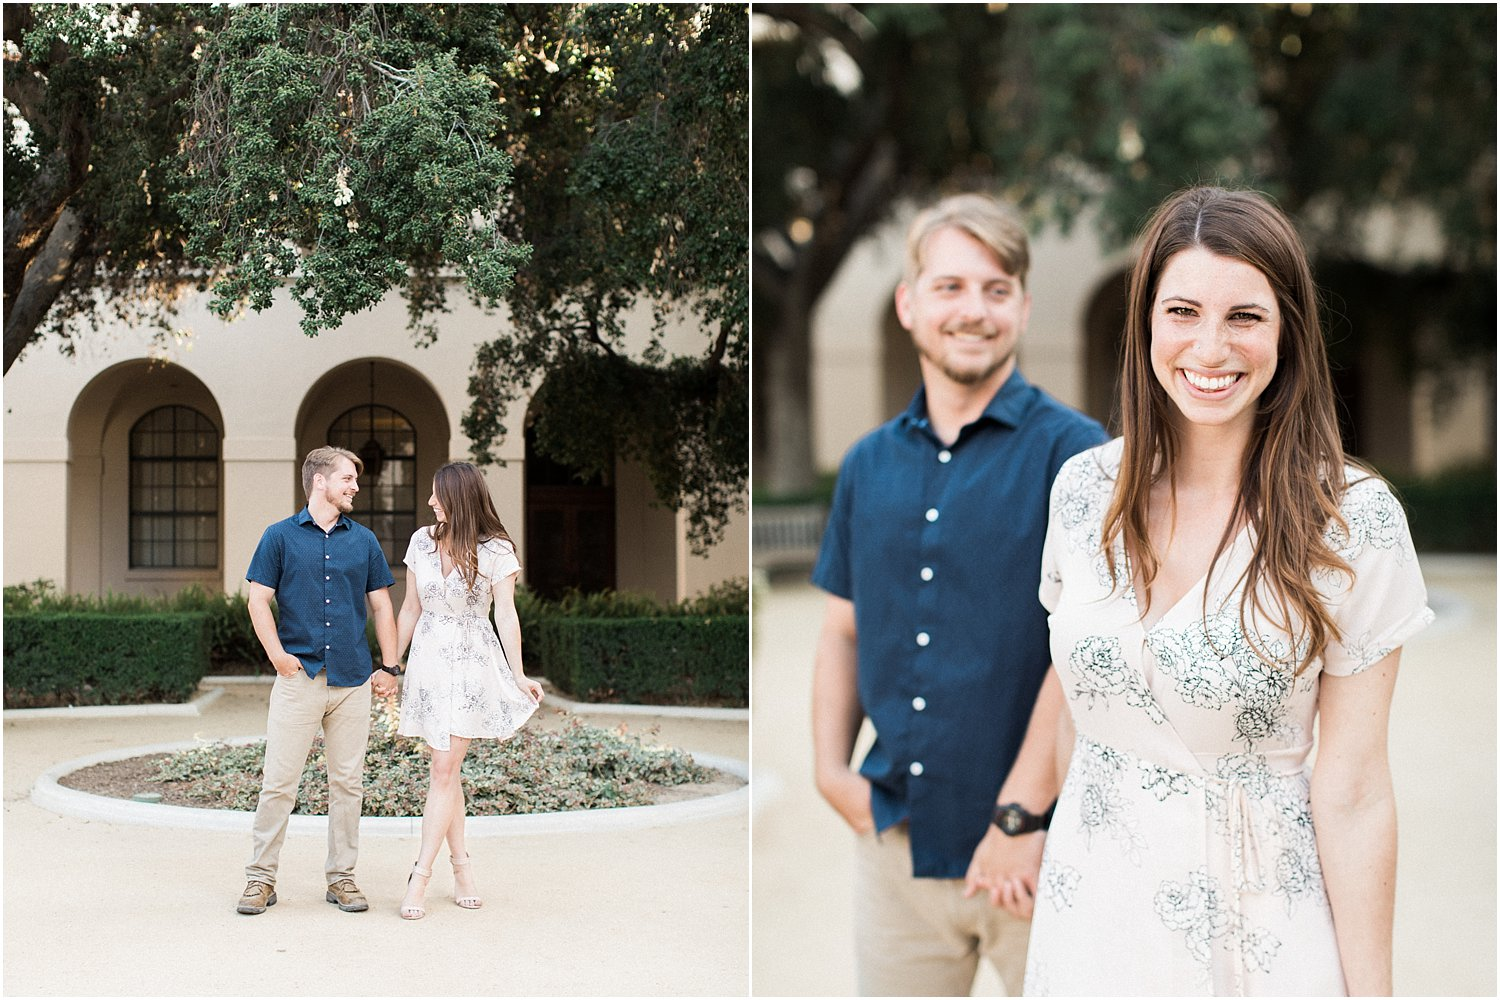 Pasadena_California_Engagement_Photographer_006.jpg